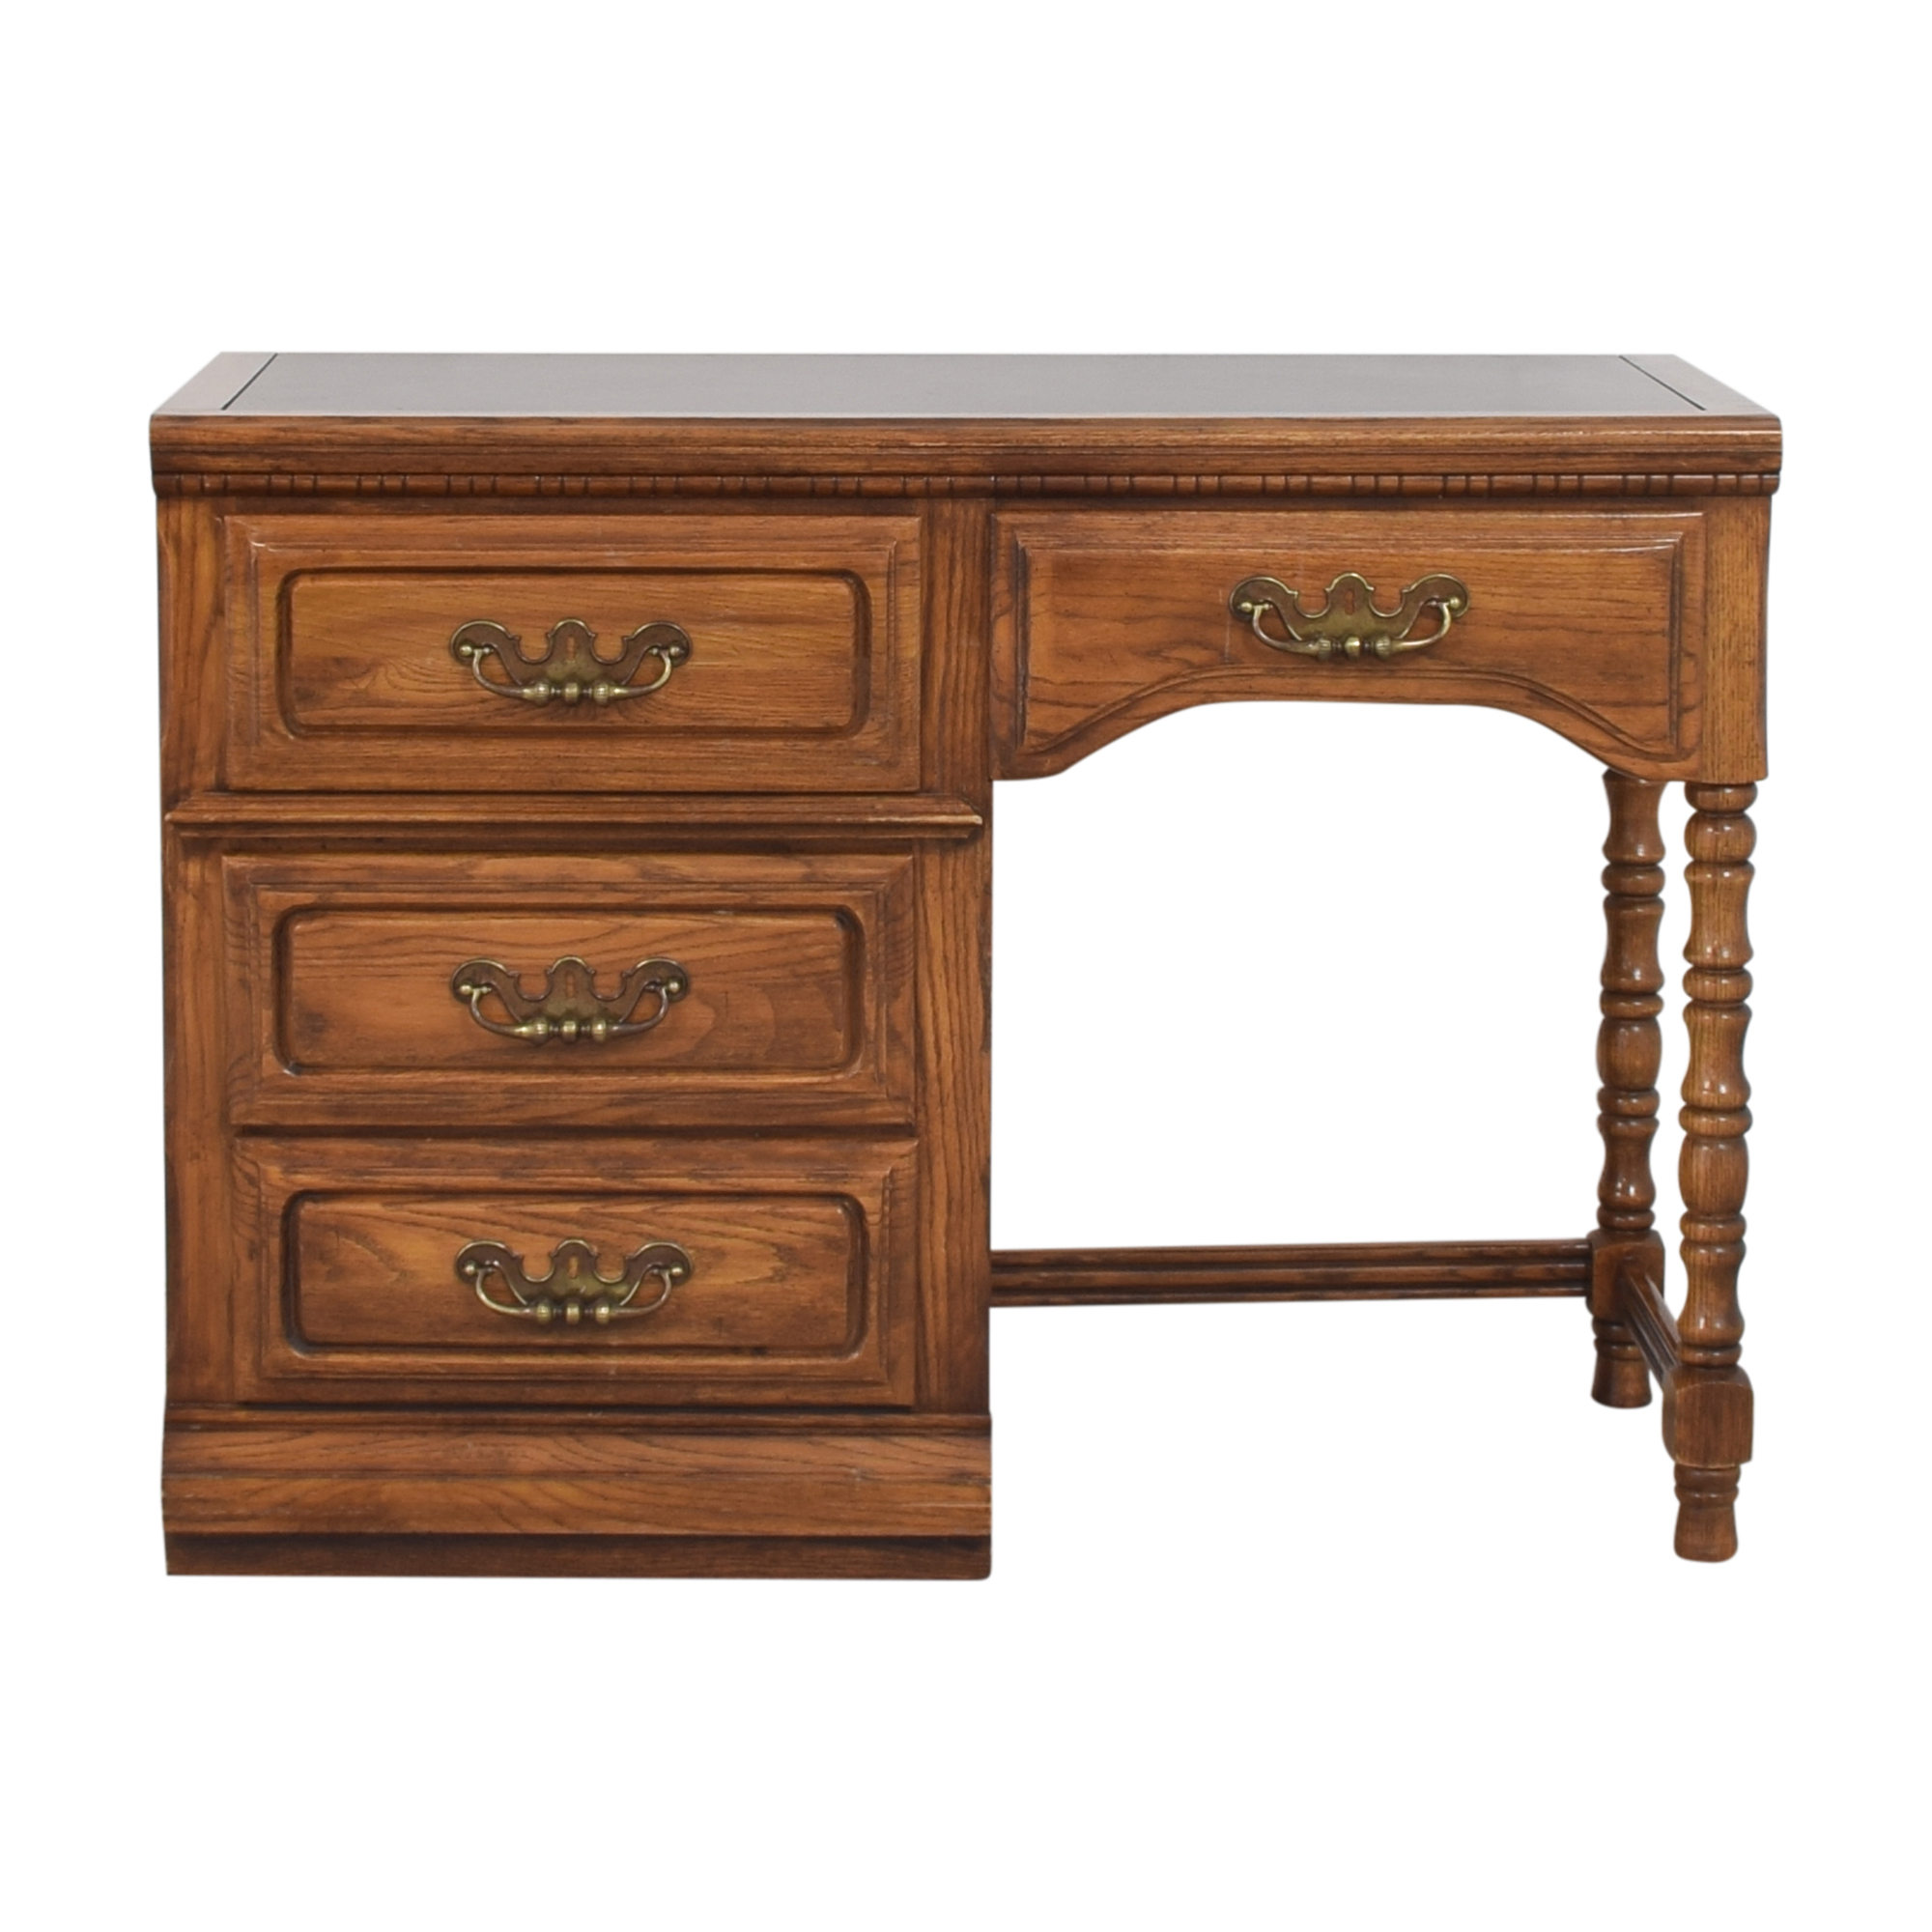 Lea Furniture Lea Furniture Four Drawer Desk nyc